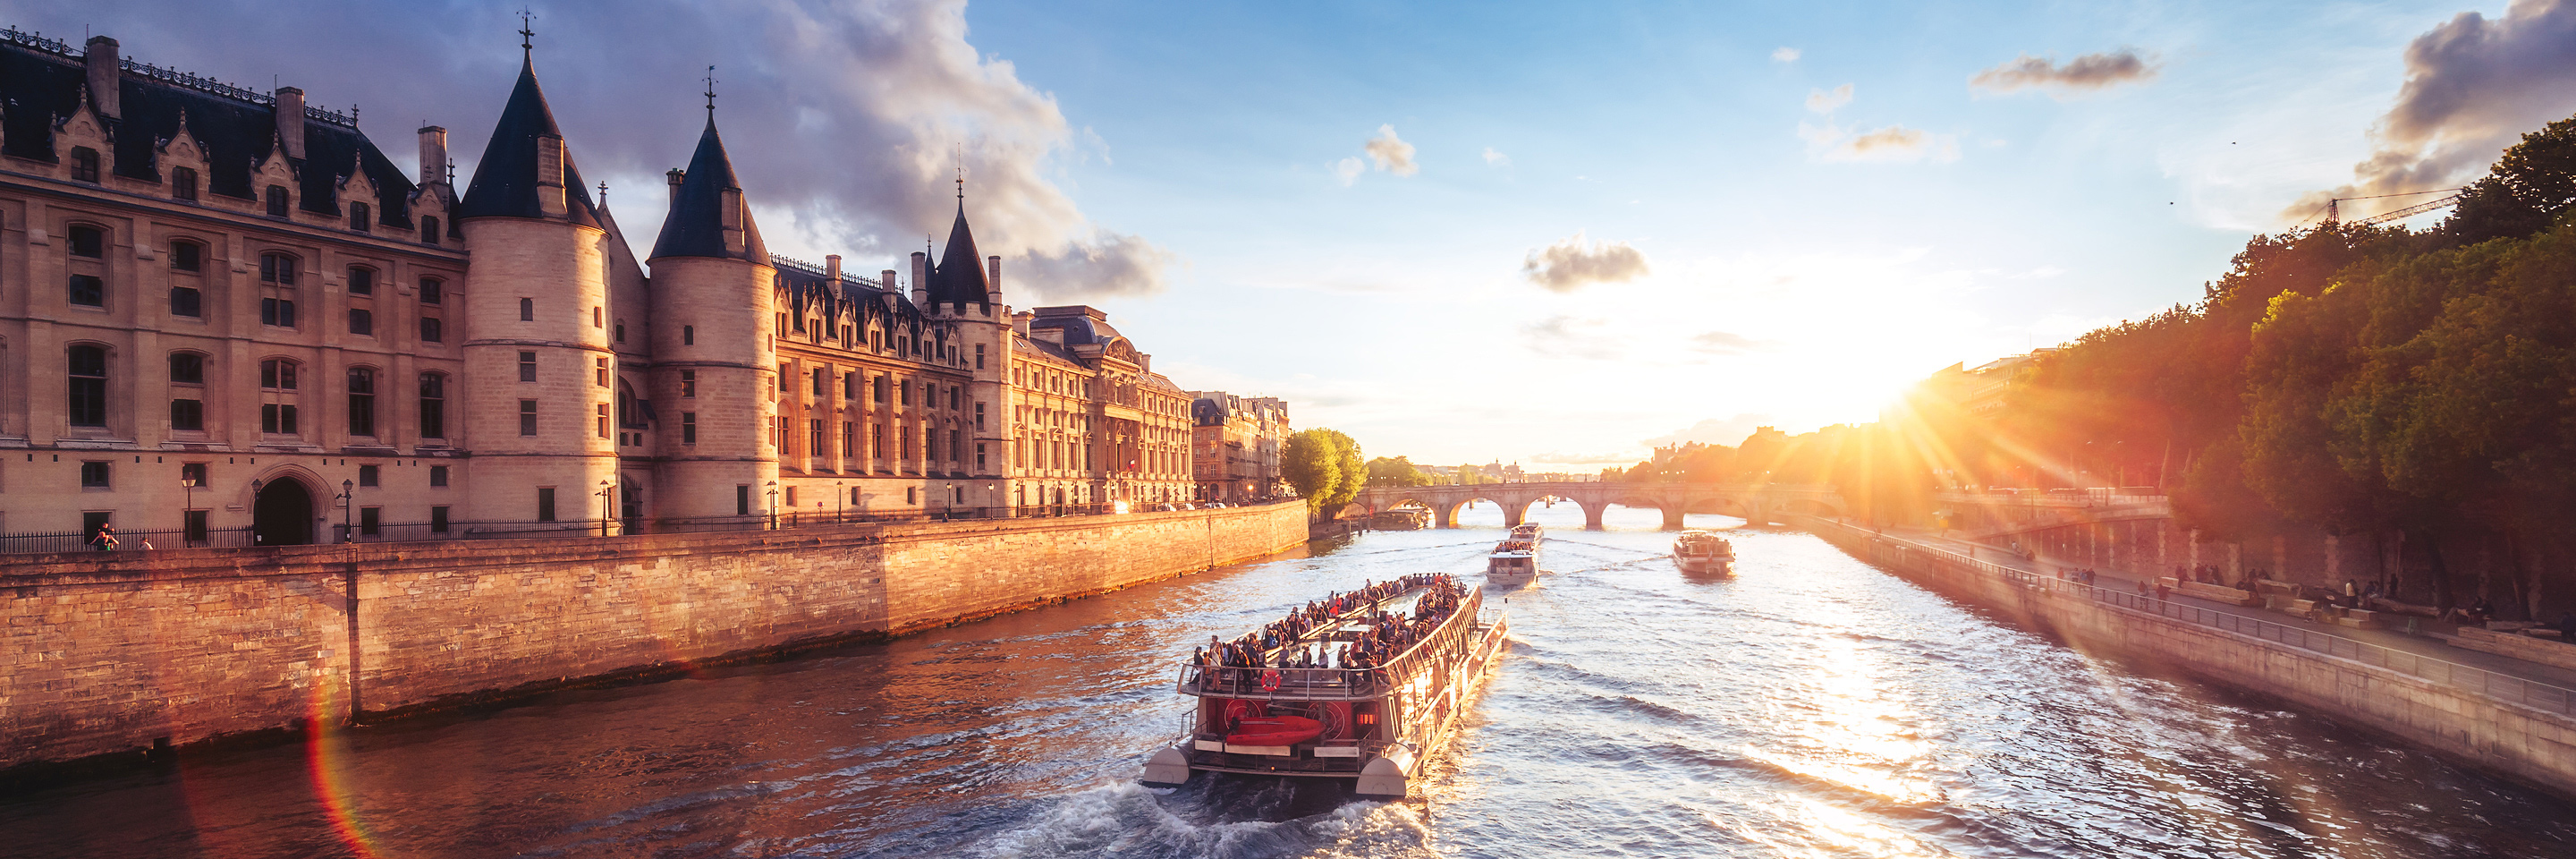 The Rhine & Moselle: Canals,  Vineyards & Castles with 2 nights in Paris for Wine Lovers